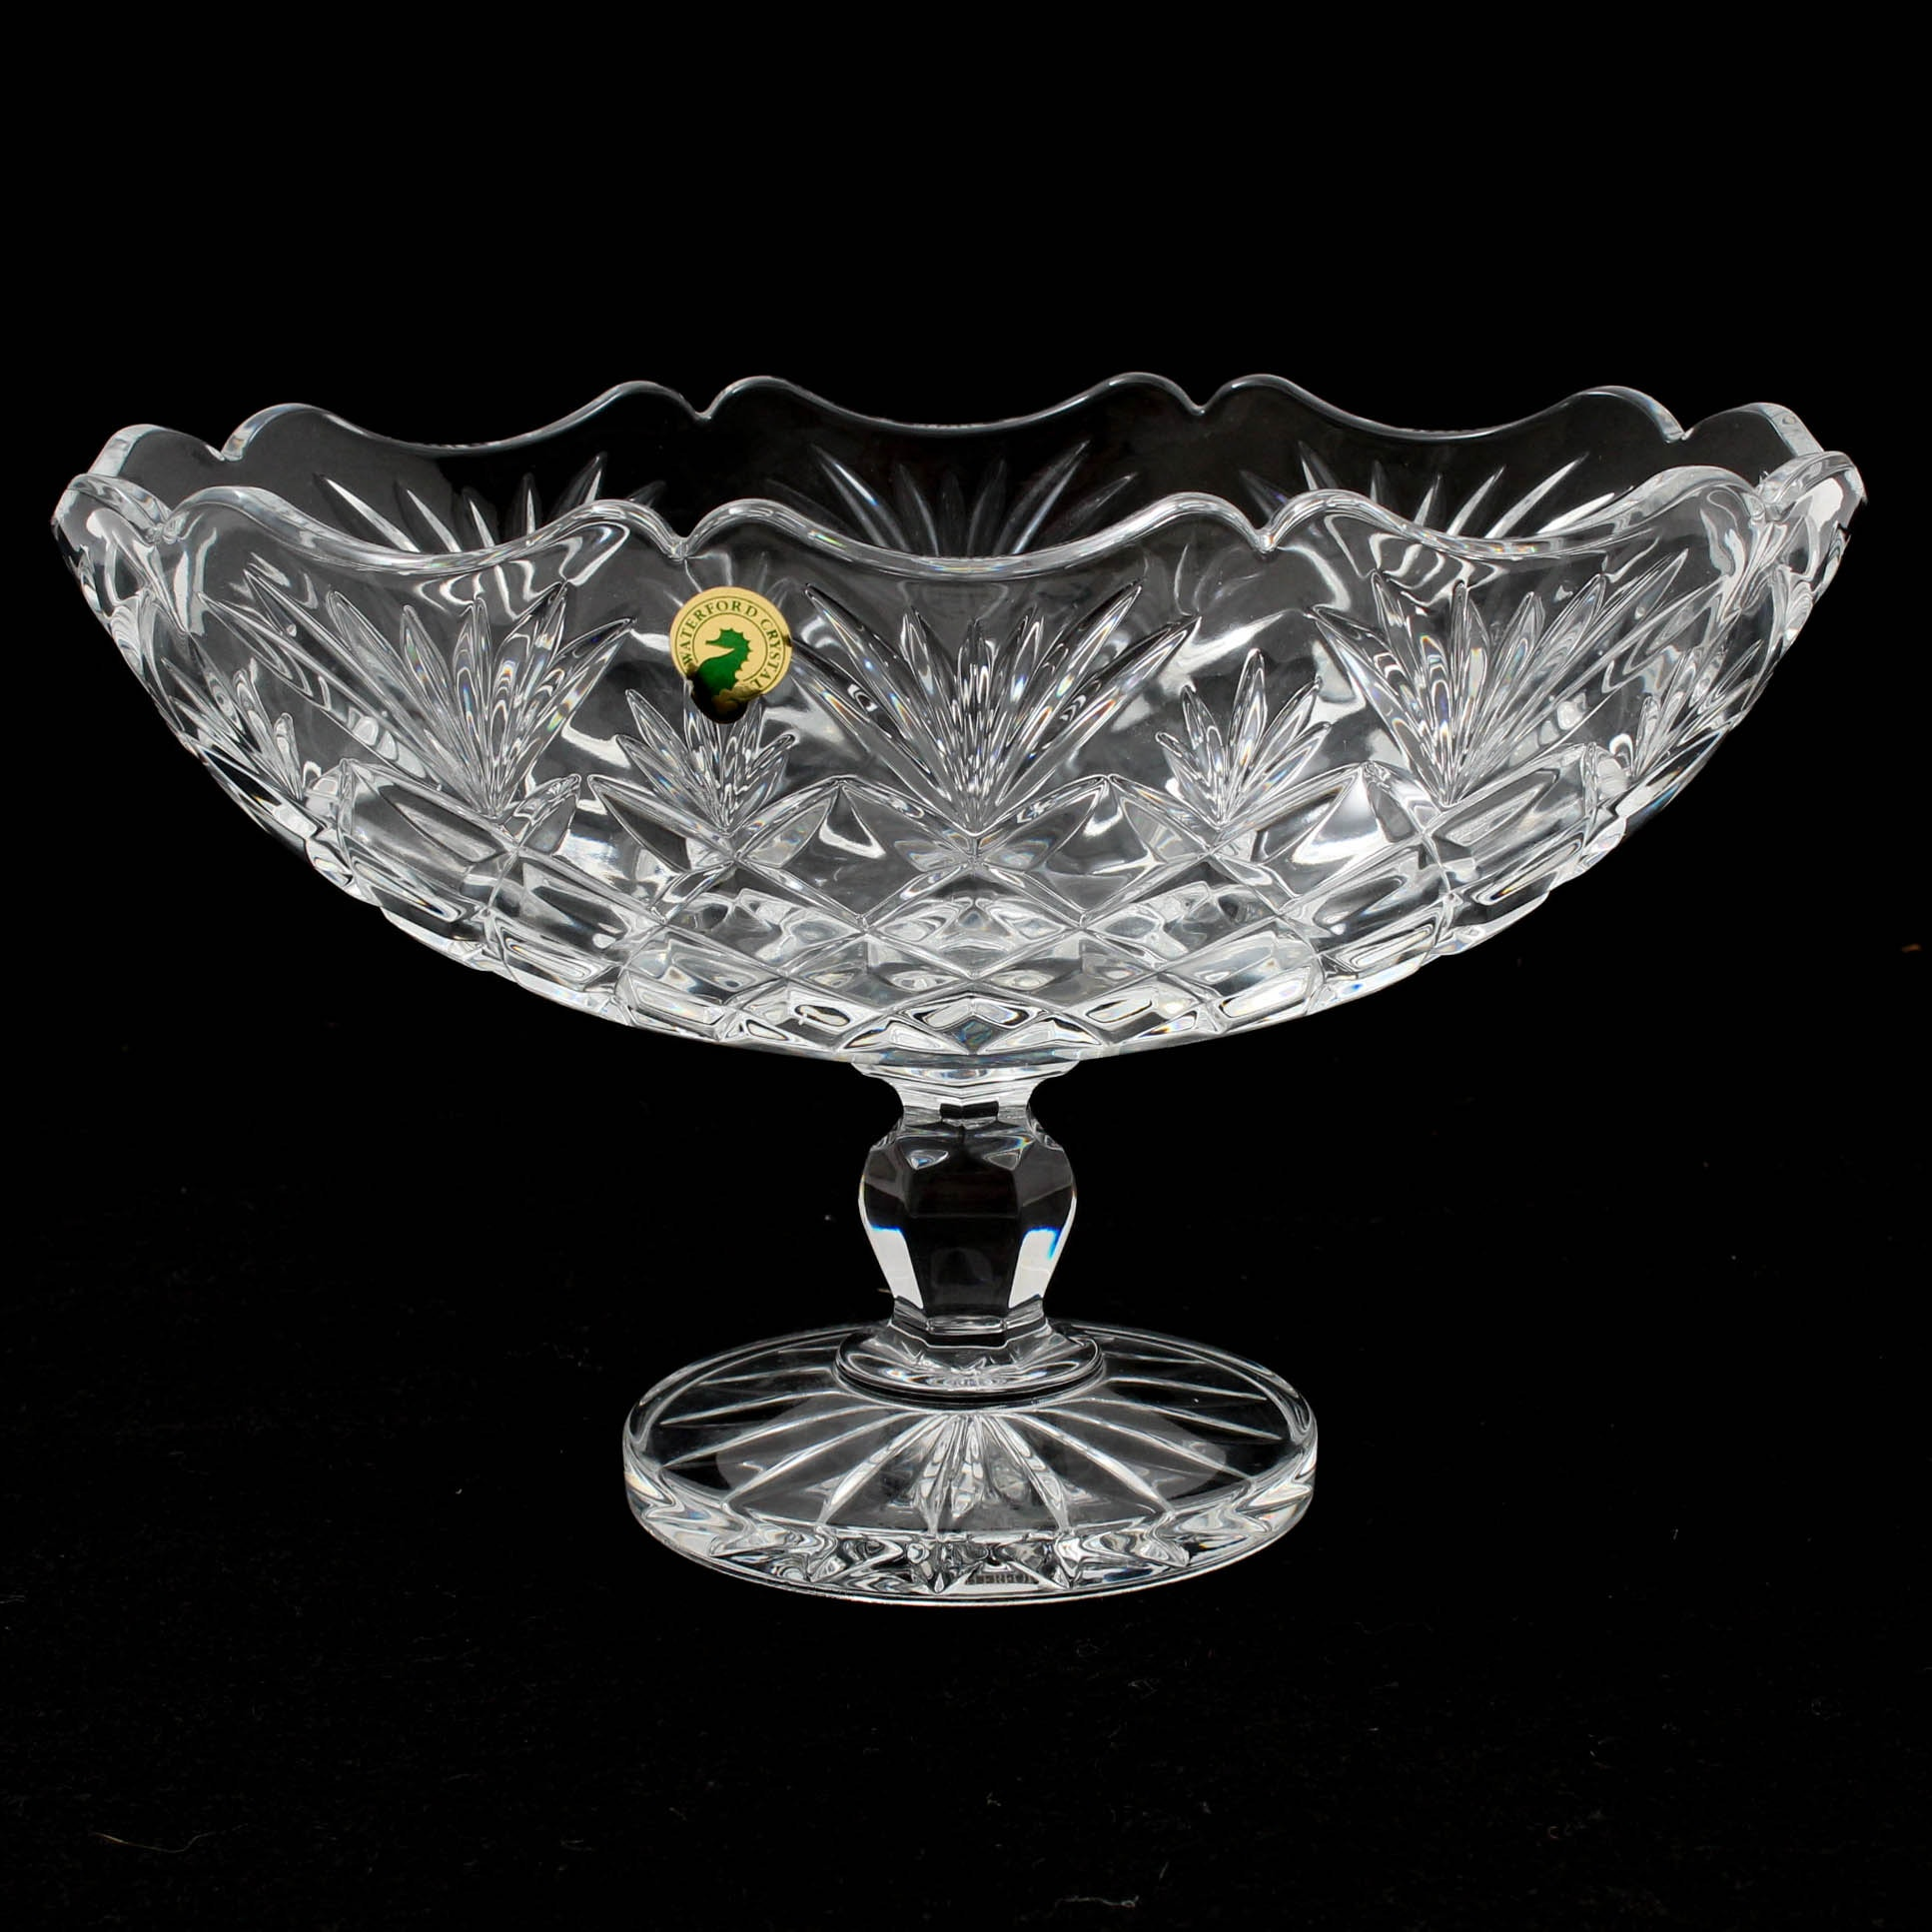 Waterford Crystal Tom Brennan Signed Artisan Collection Scalloped Boat Bowl